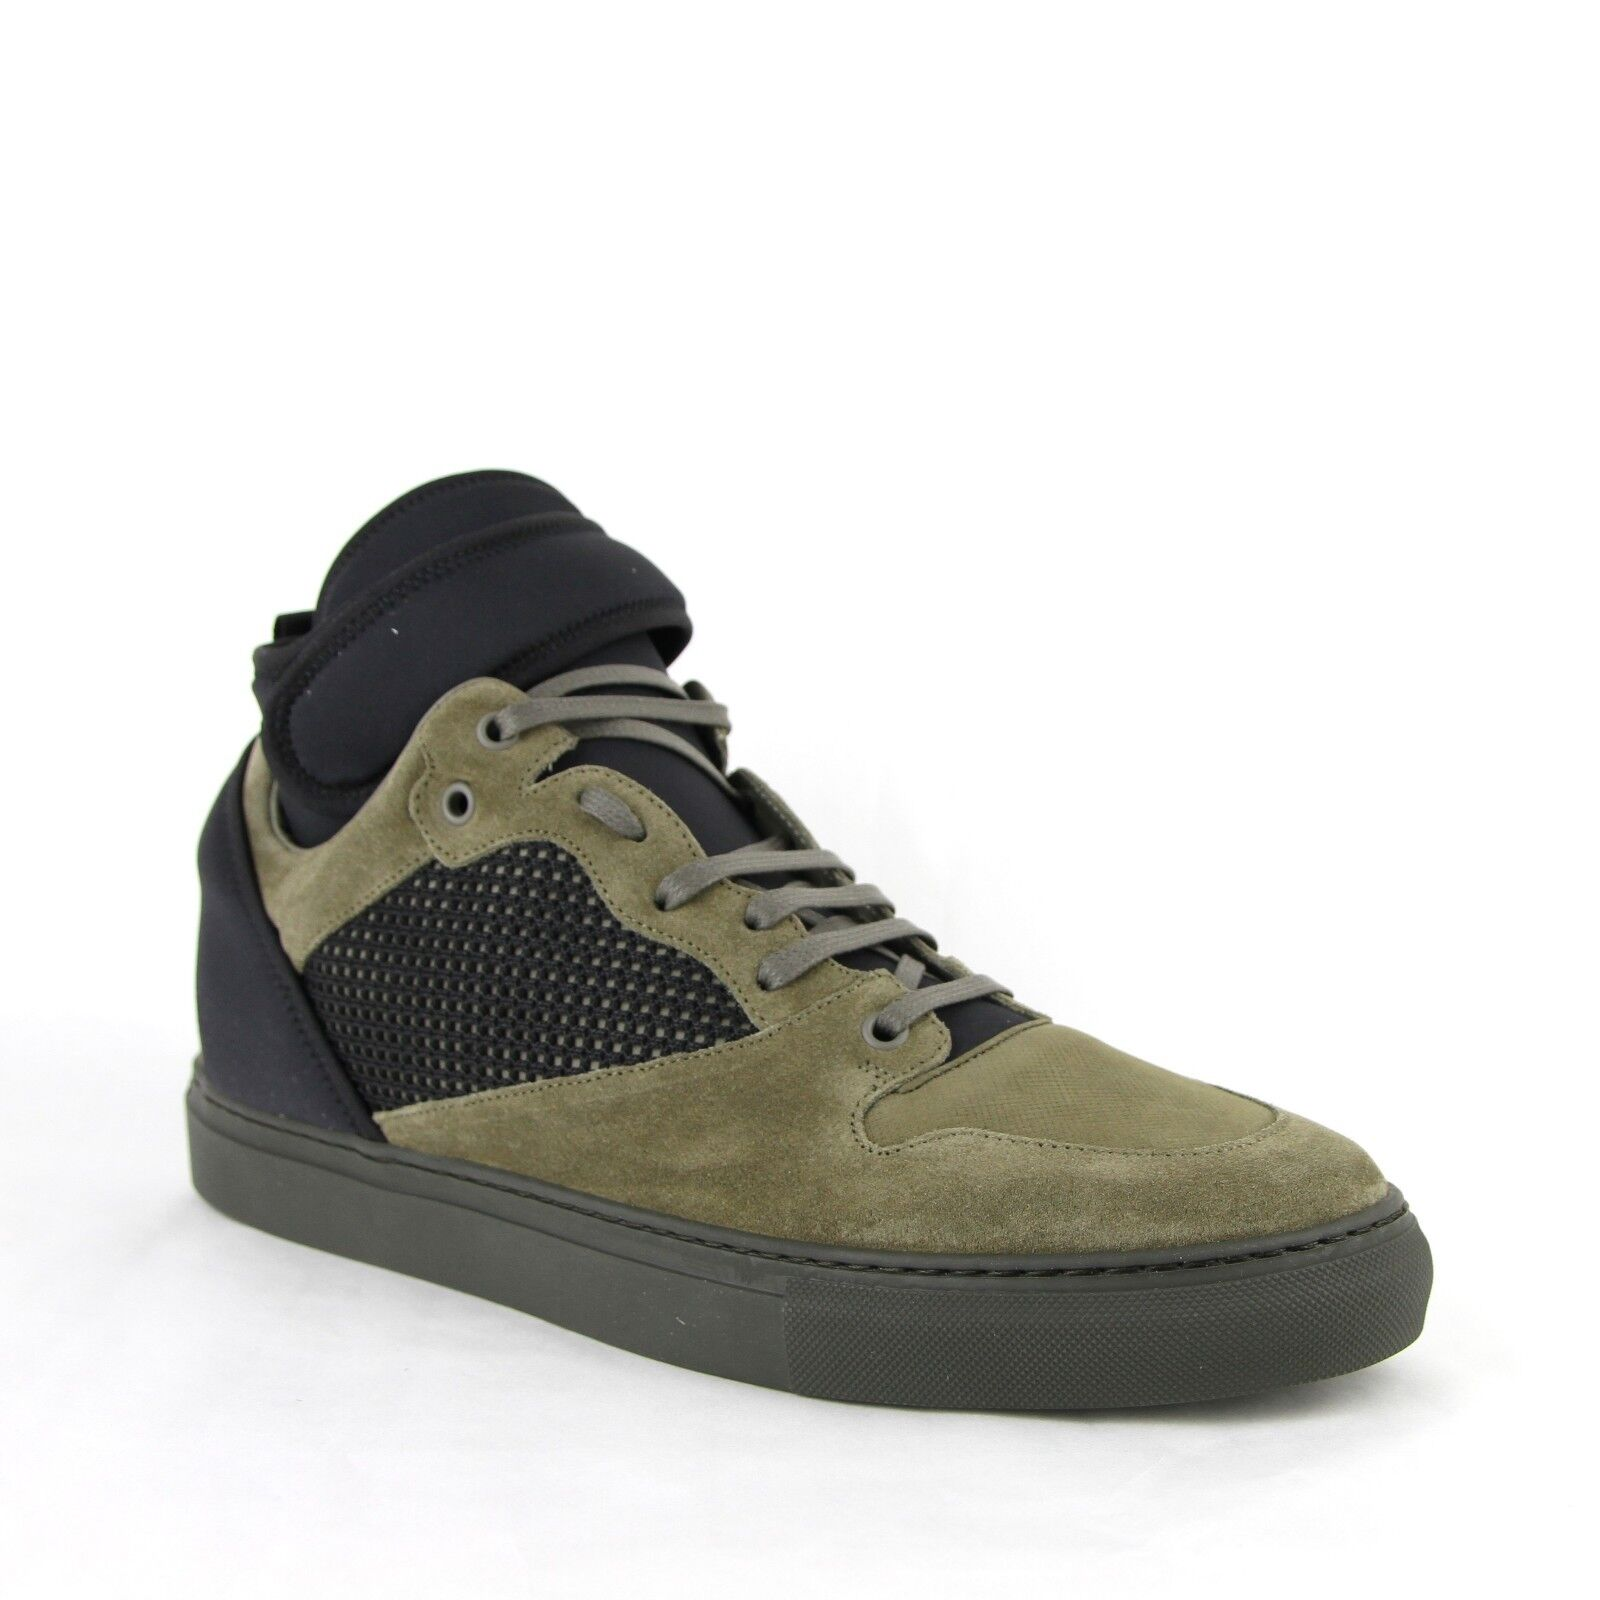 795 Balenciaga Men's Black olive Suede Leather High Top Sneakers 412349 3241